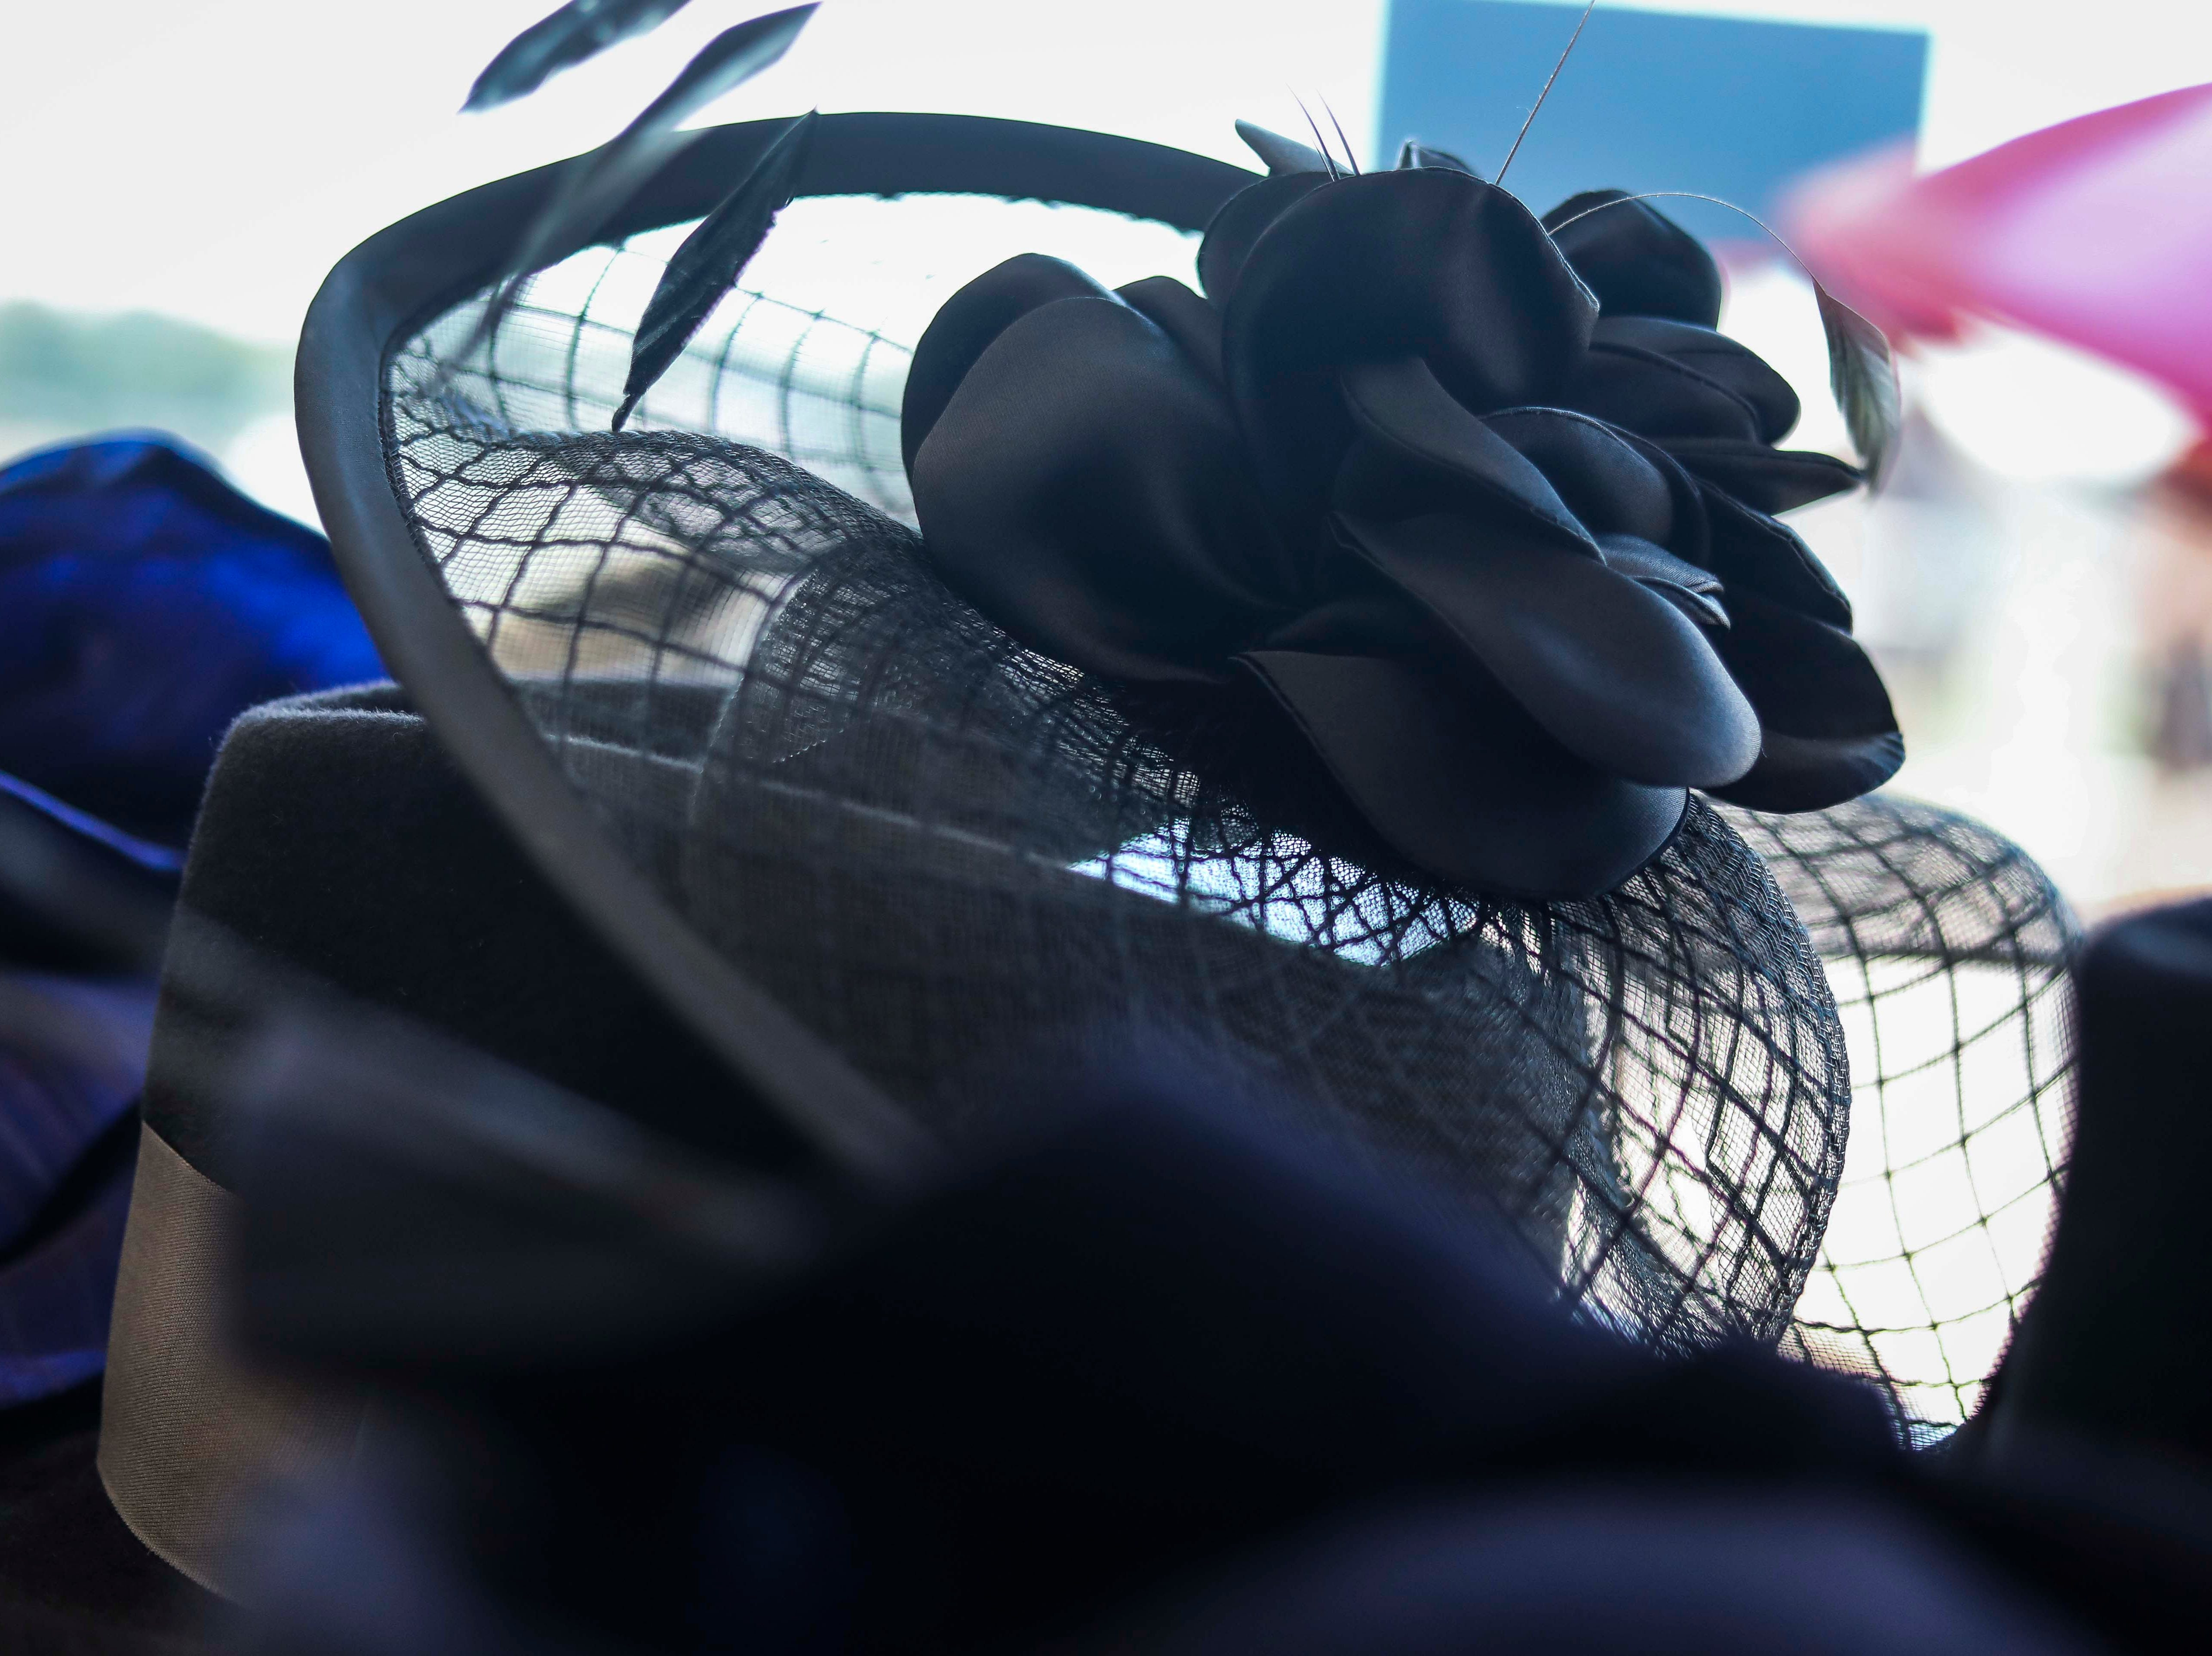 Christine Moore's handmade Cam Hats made for the Breeder's Cup (November 2) on display at Churchill Downs on Wednesday, October 3, 2018.